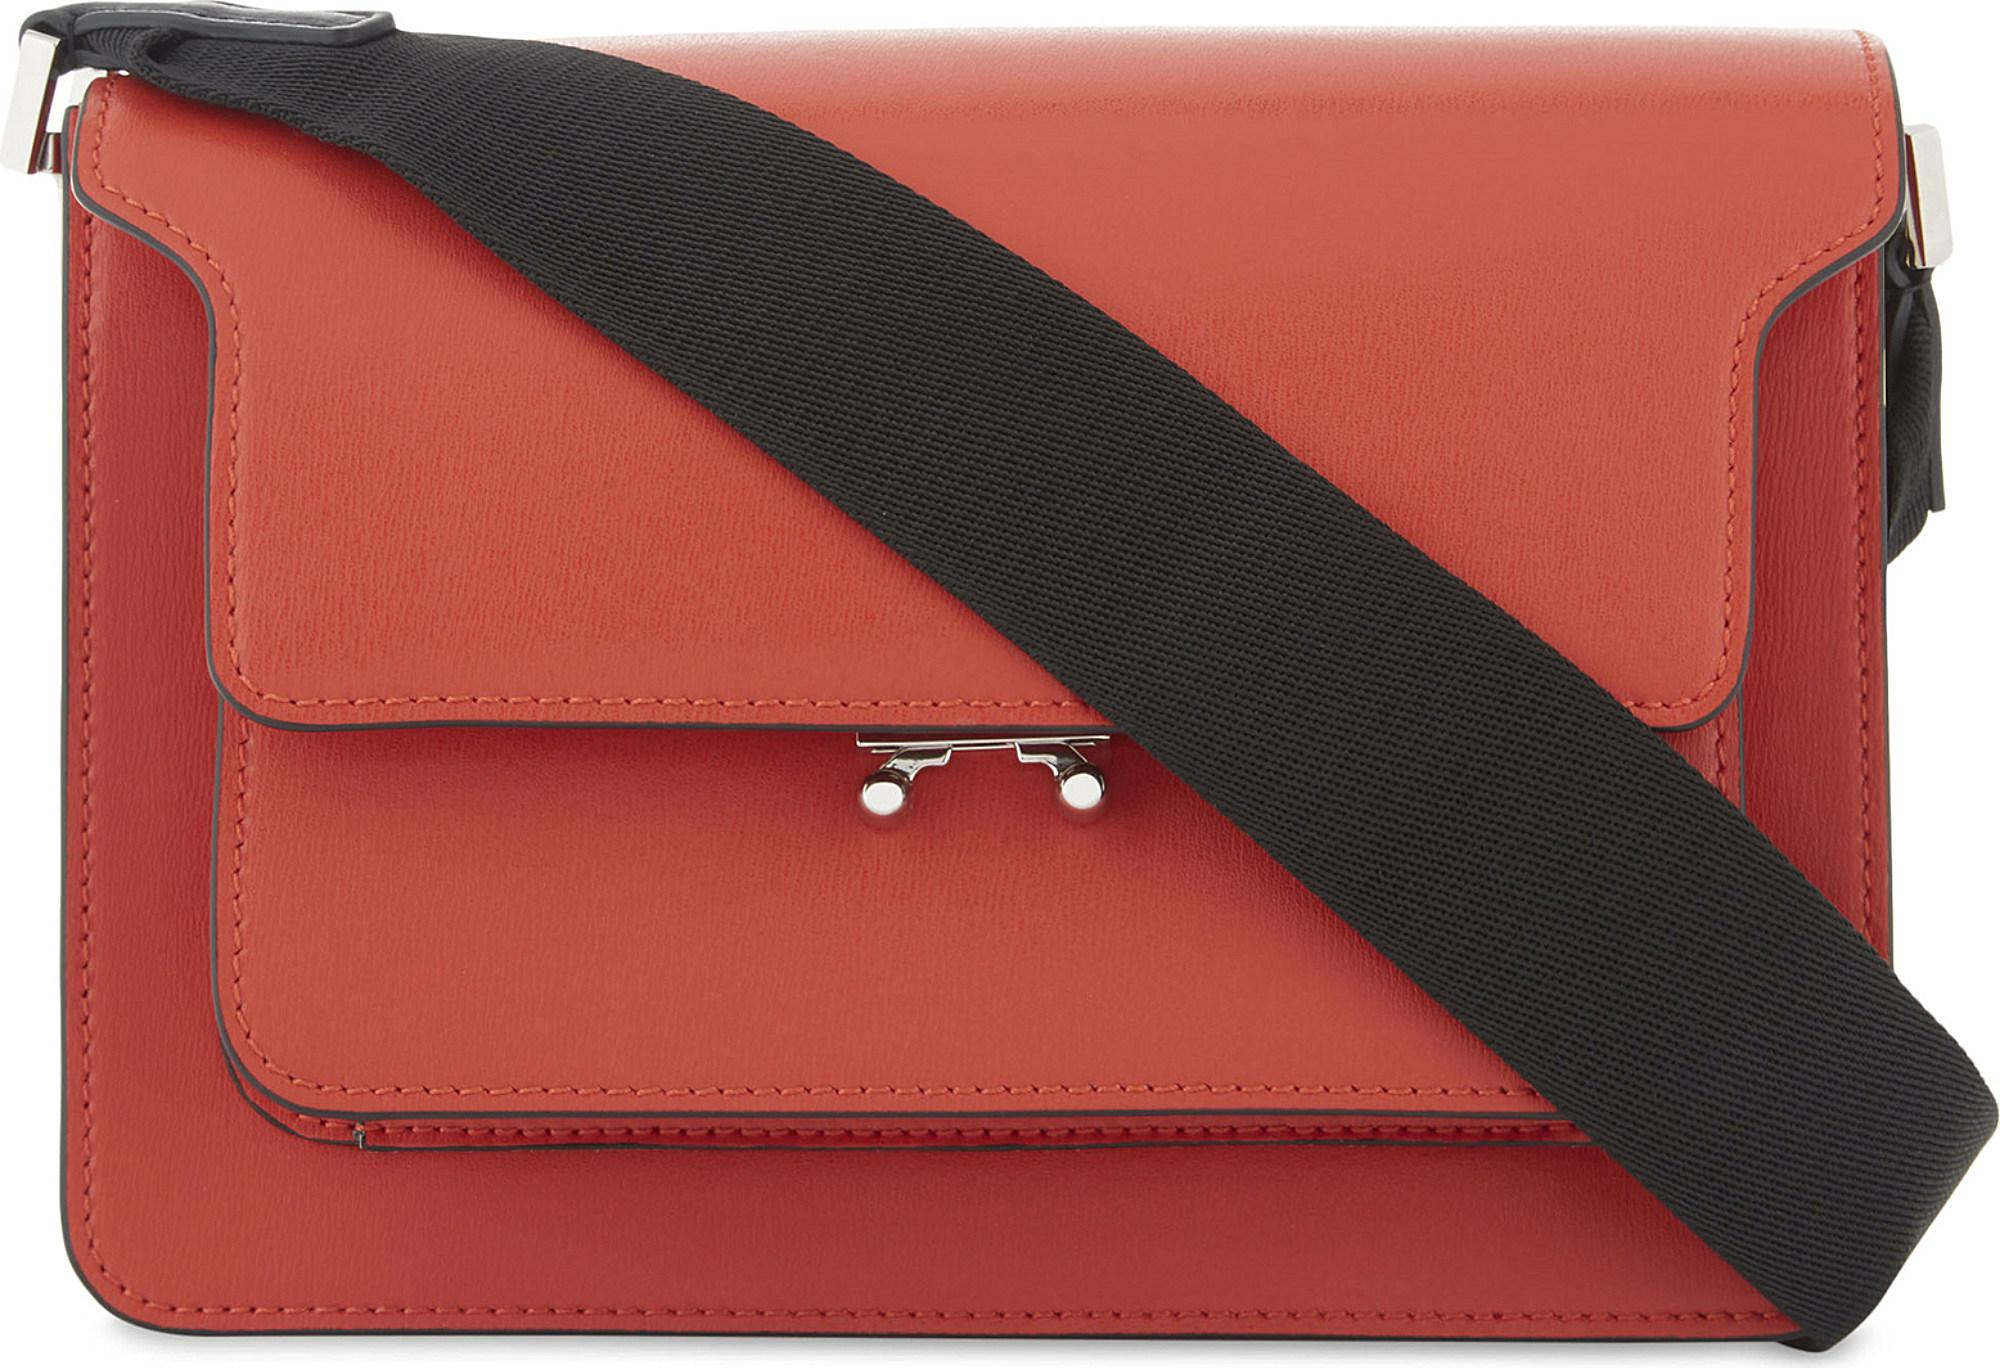 b3f04351c9 Marni Leather Trunk Shoulder Bag in Red - Lyst